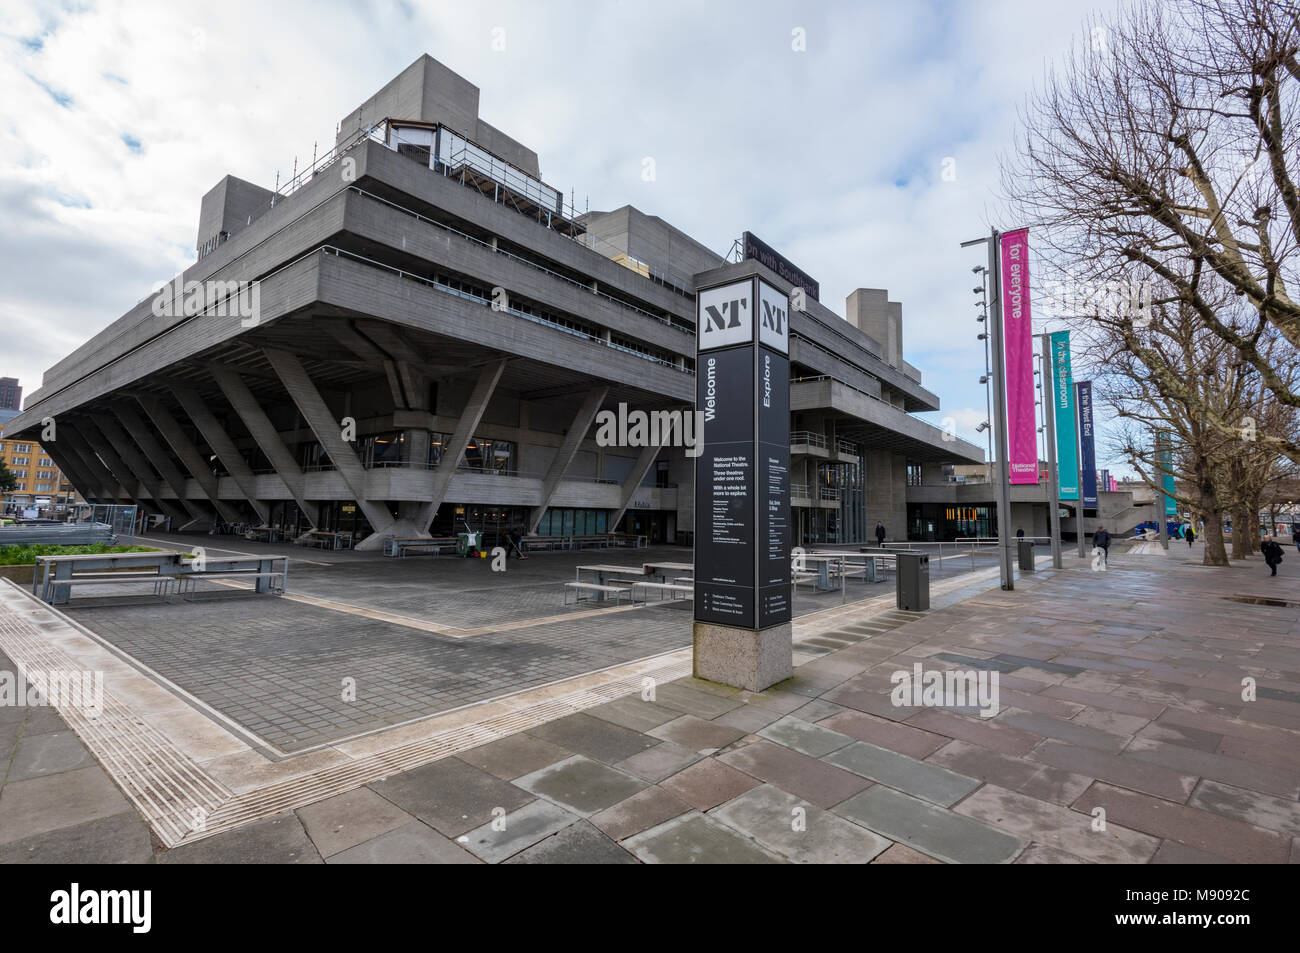 The national theatre on the south bank of the river thames in central London. Famous entertainment establishment - Stock Image